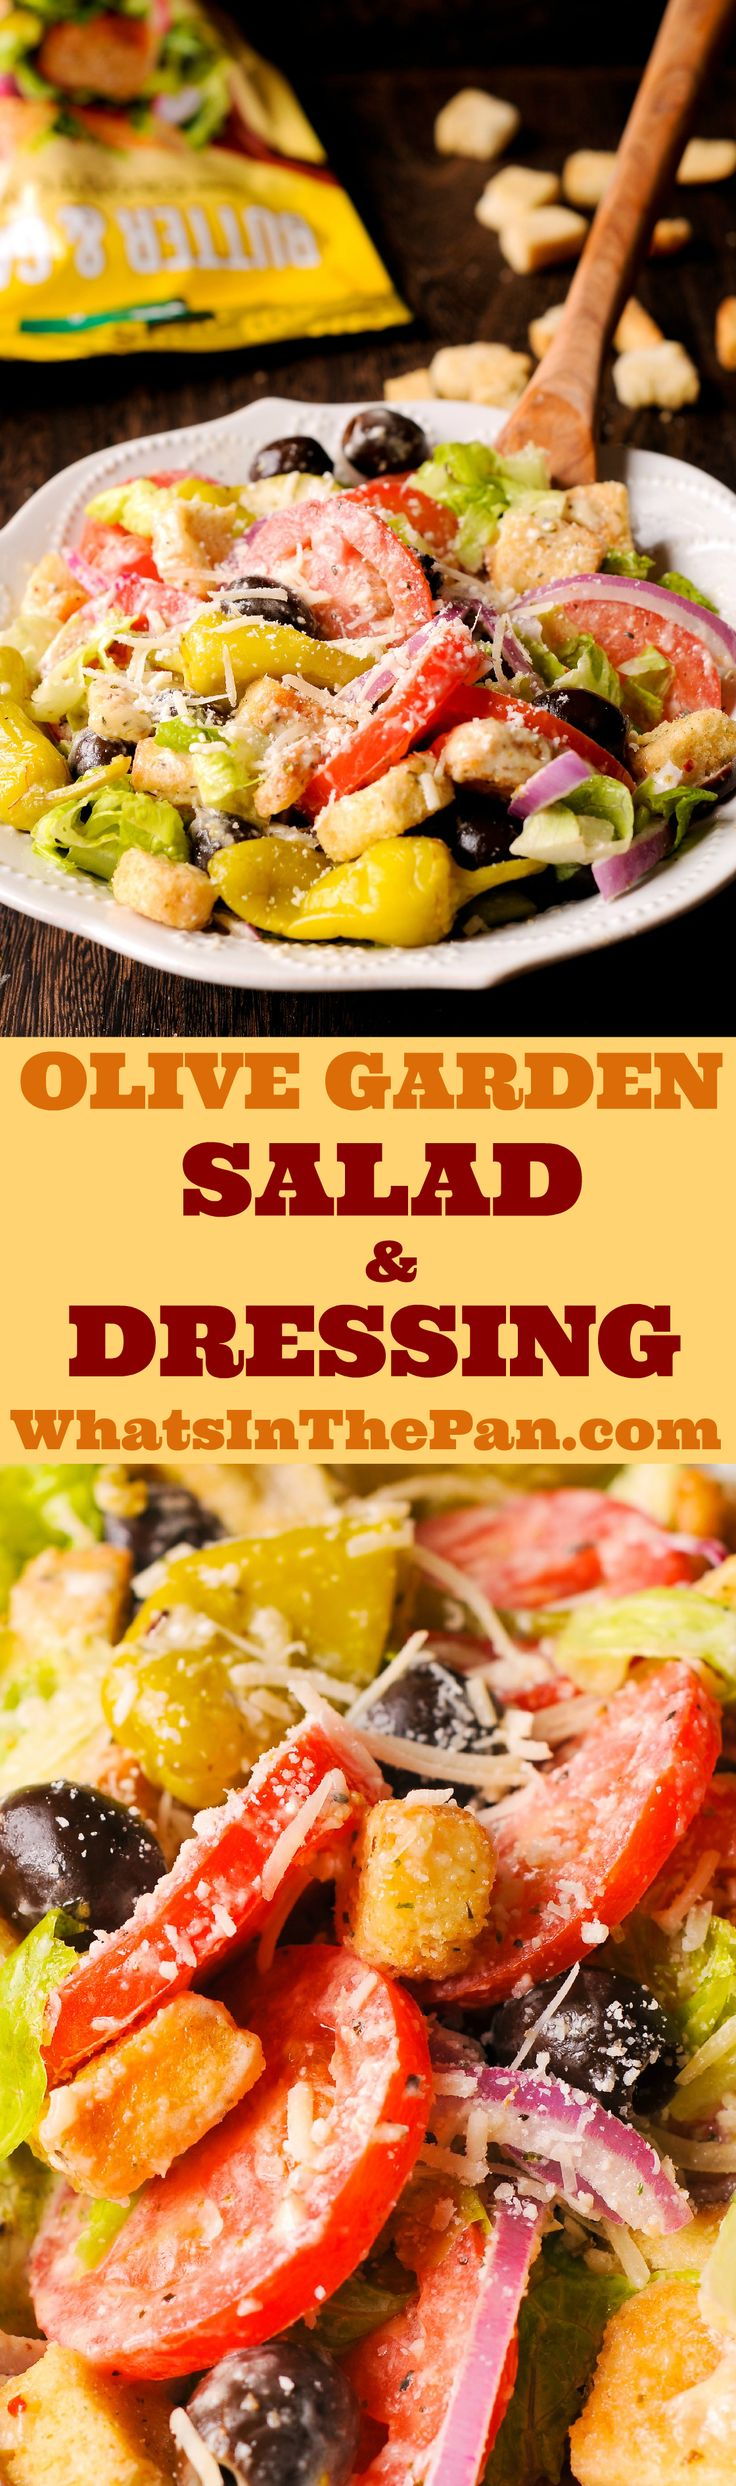 Olive Garden Salad and Dressing, Italian salad, #copycat